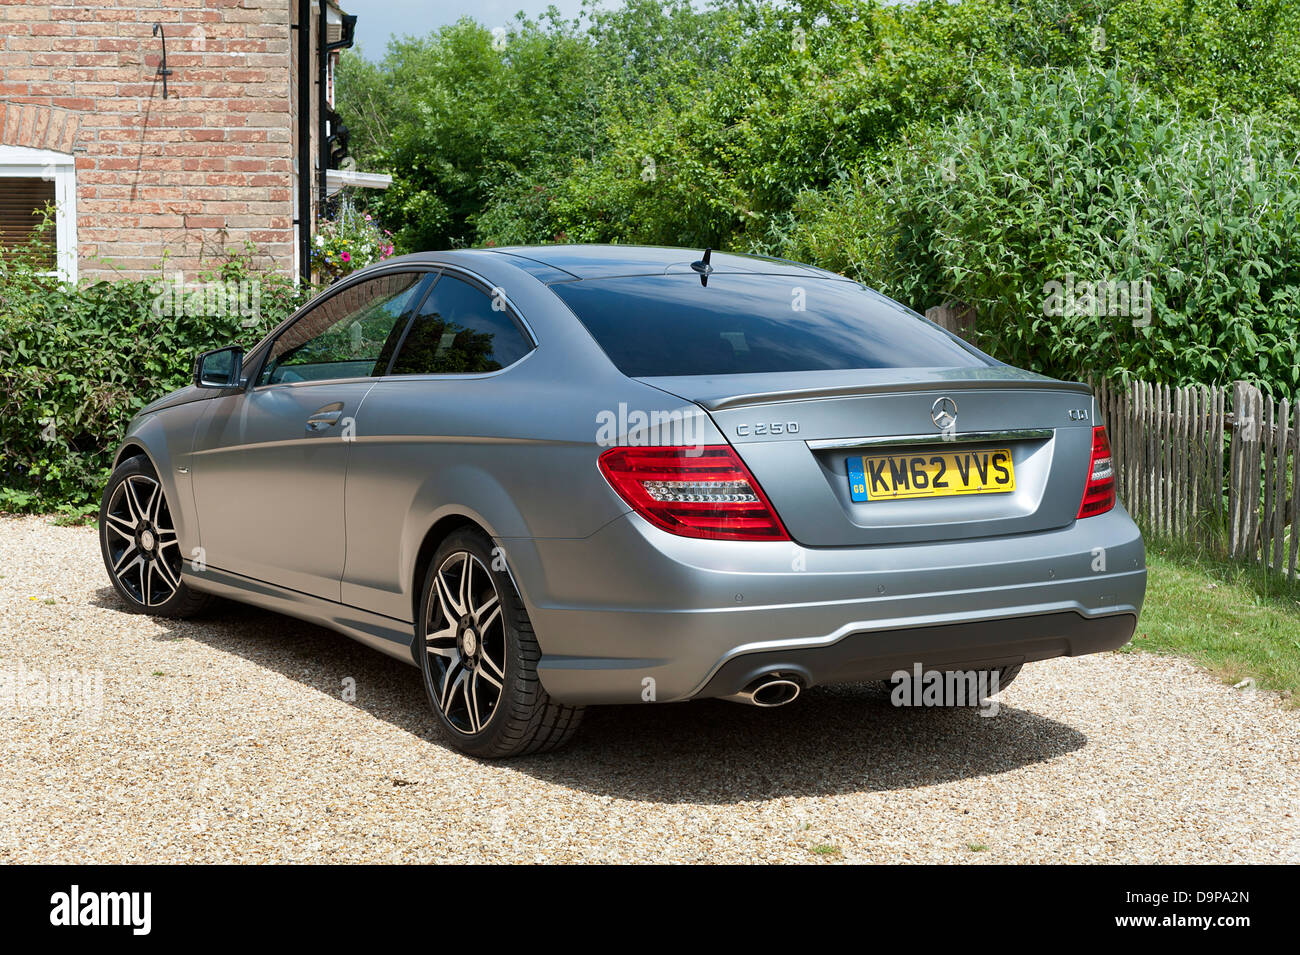 2013 mercedes benz c250 cdi coupe amg sport stock photo royalty free image 57653869 alamy. Black Bedroom Furniture Sets. Home Design Ideas